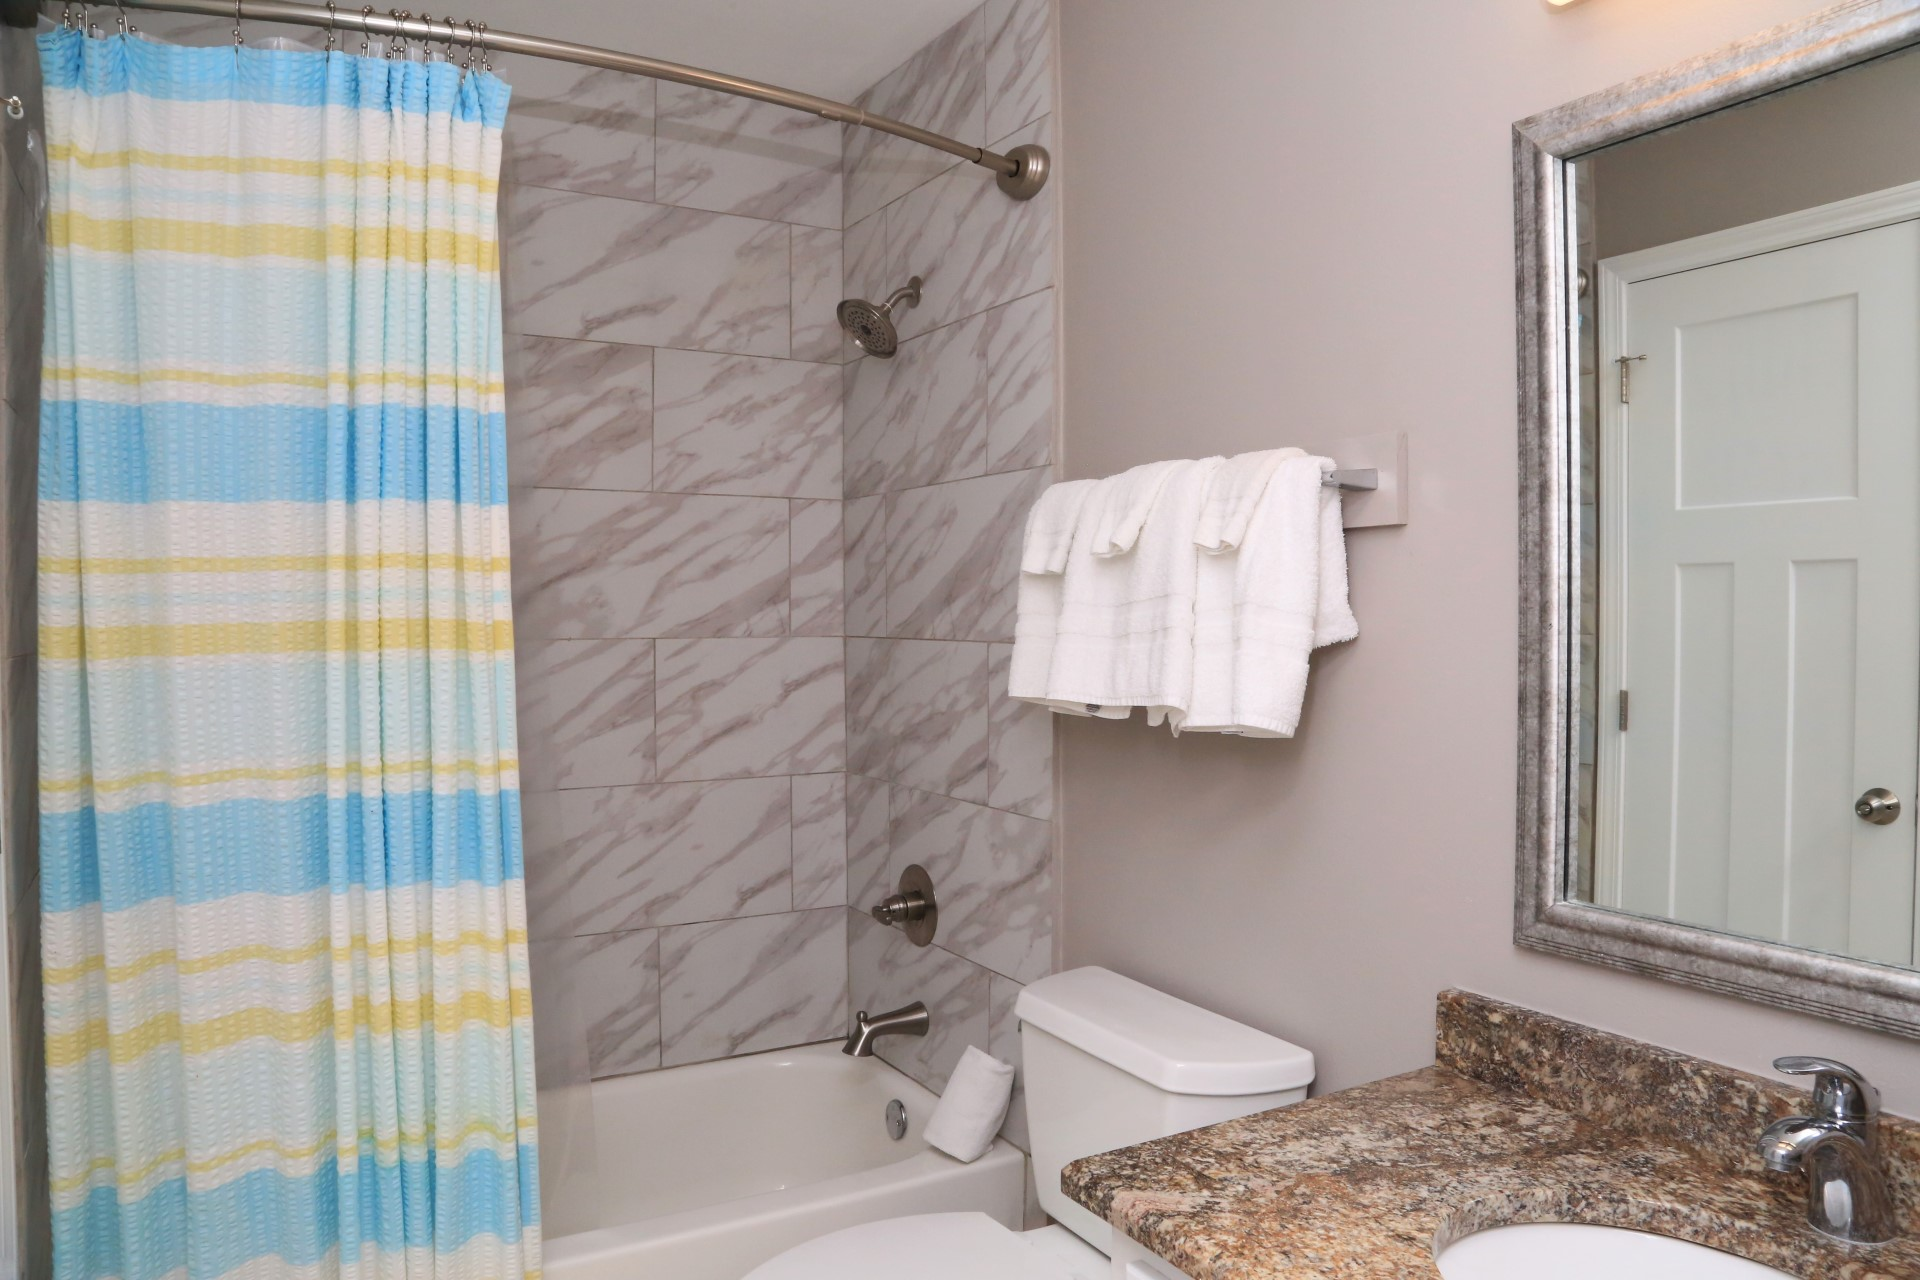 The master bathroom is newly renovated with tiled wall enclo